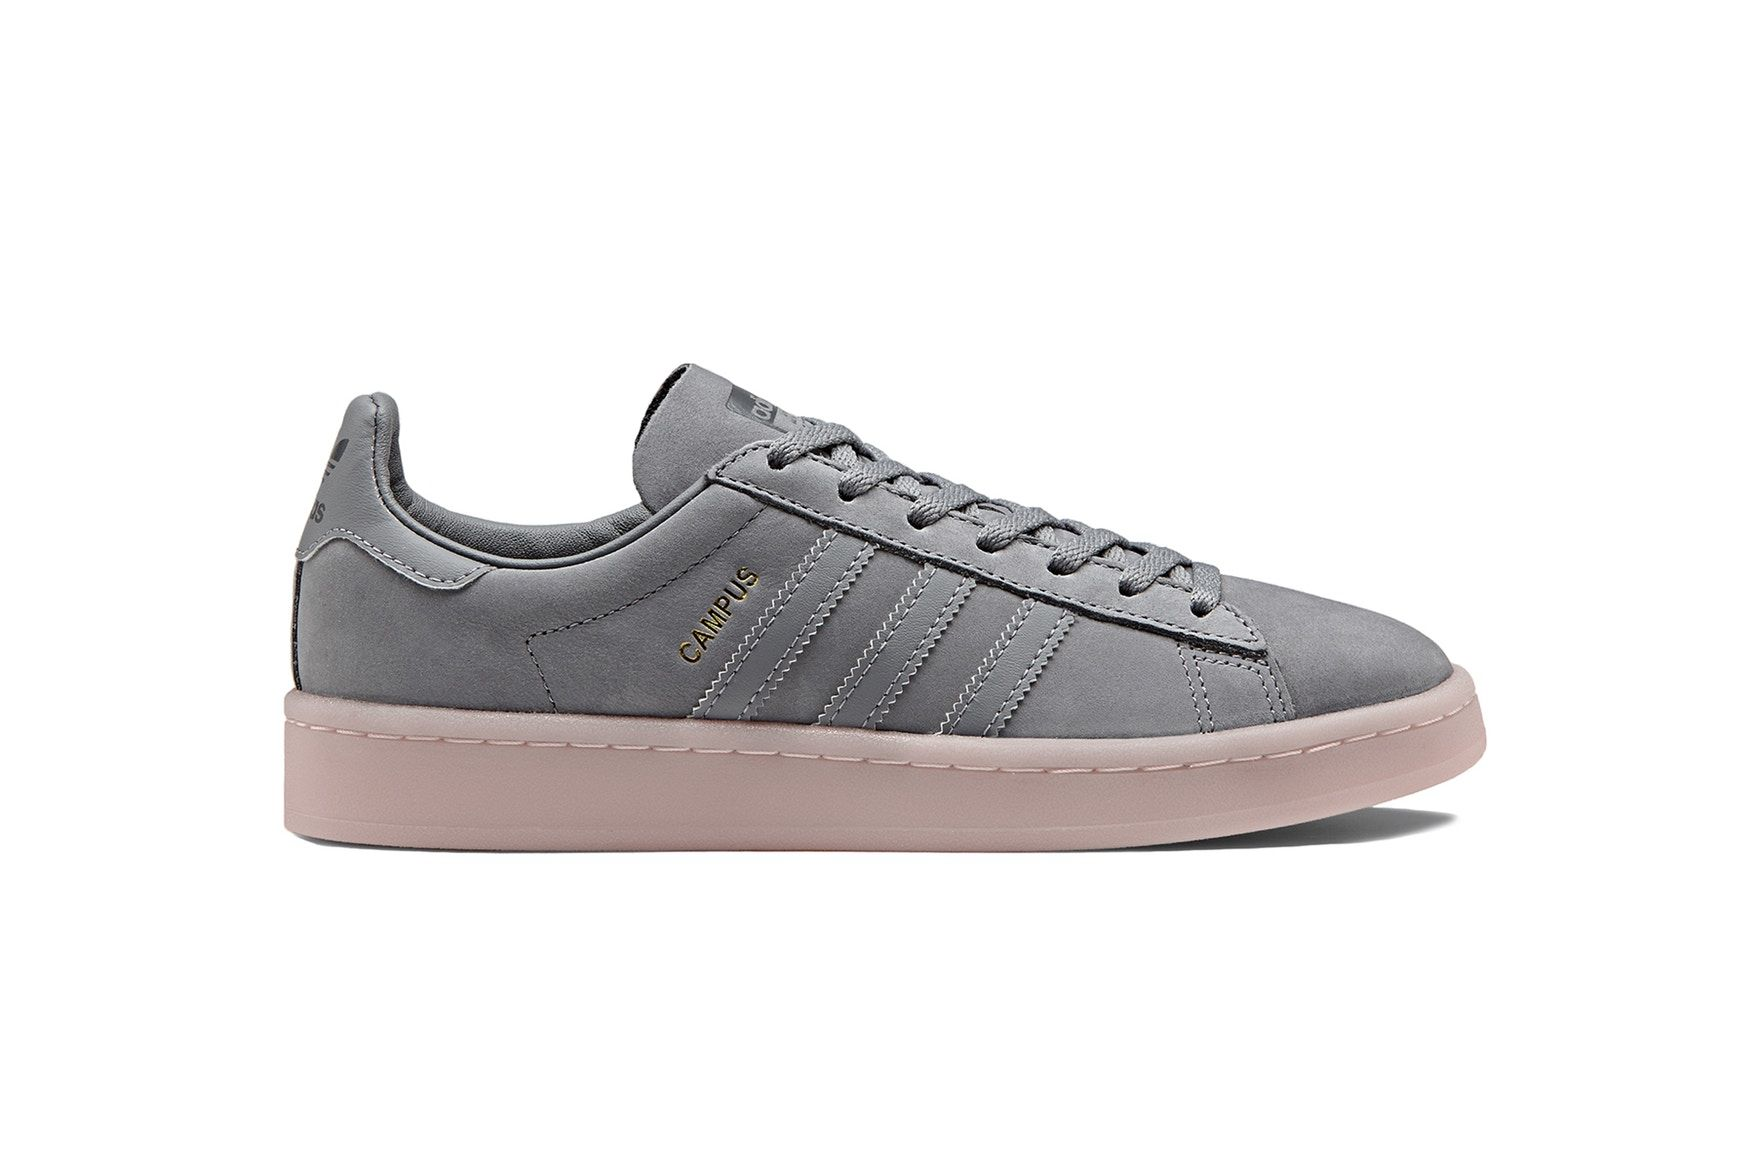 ADIDAS CHIARO EM UP 2 Mens Premium BASKET Court Scarpe Sportive Casual Nero